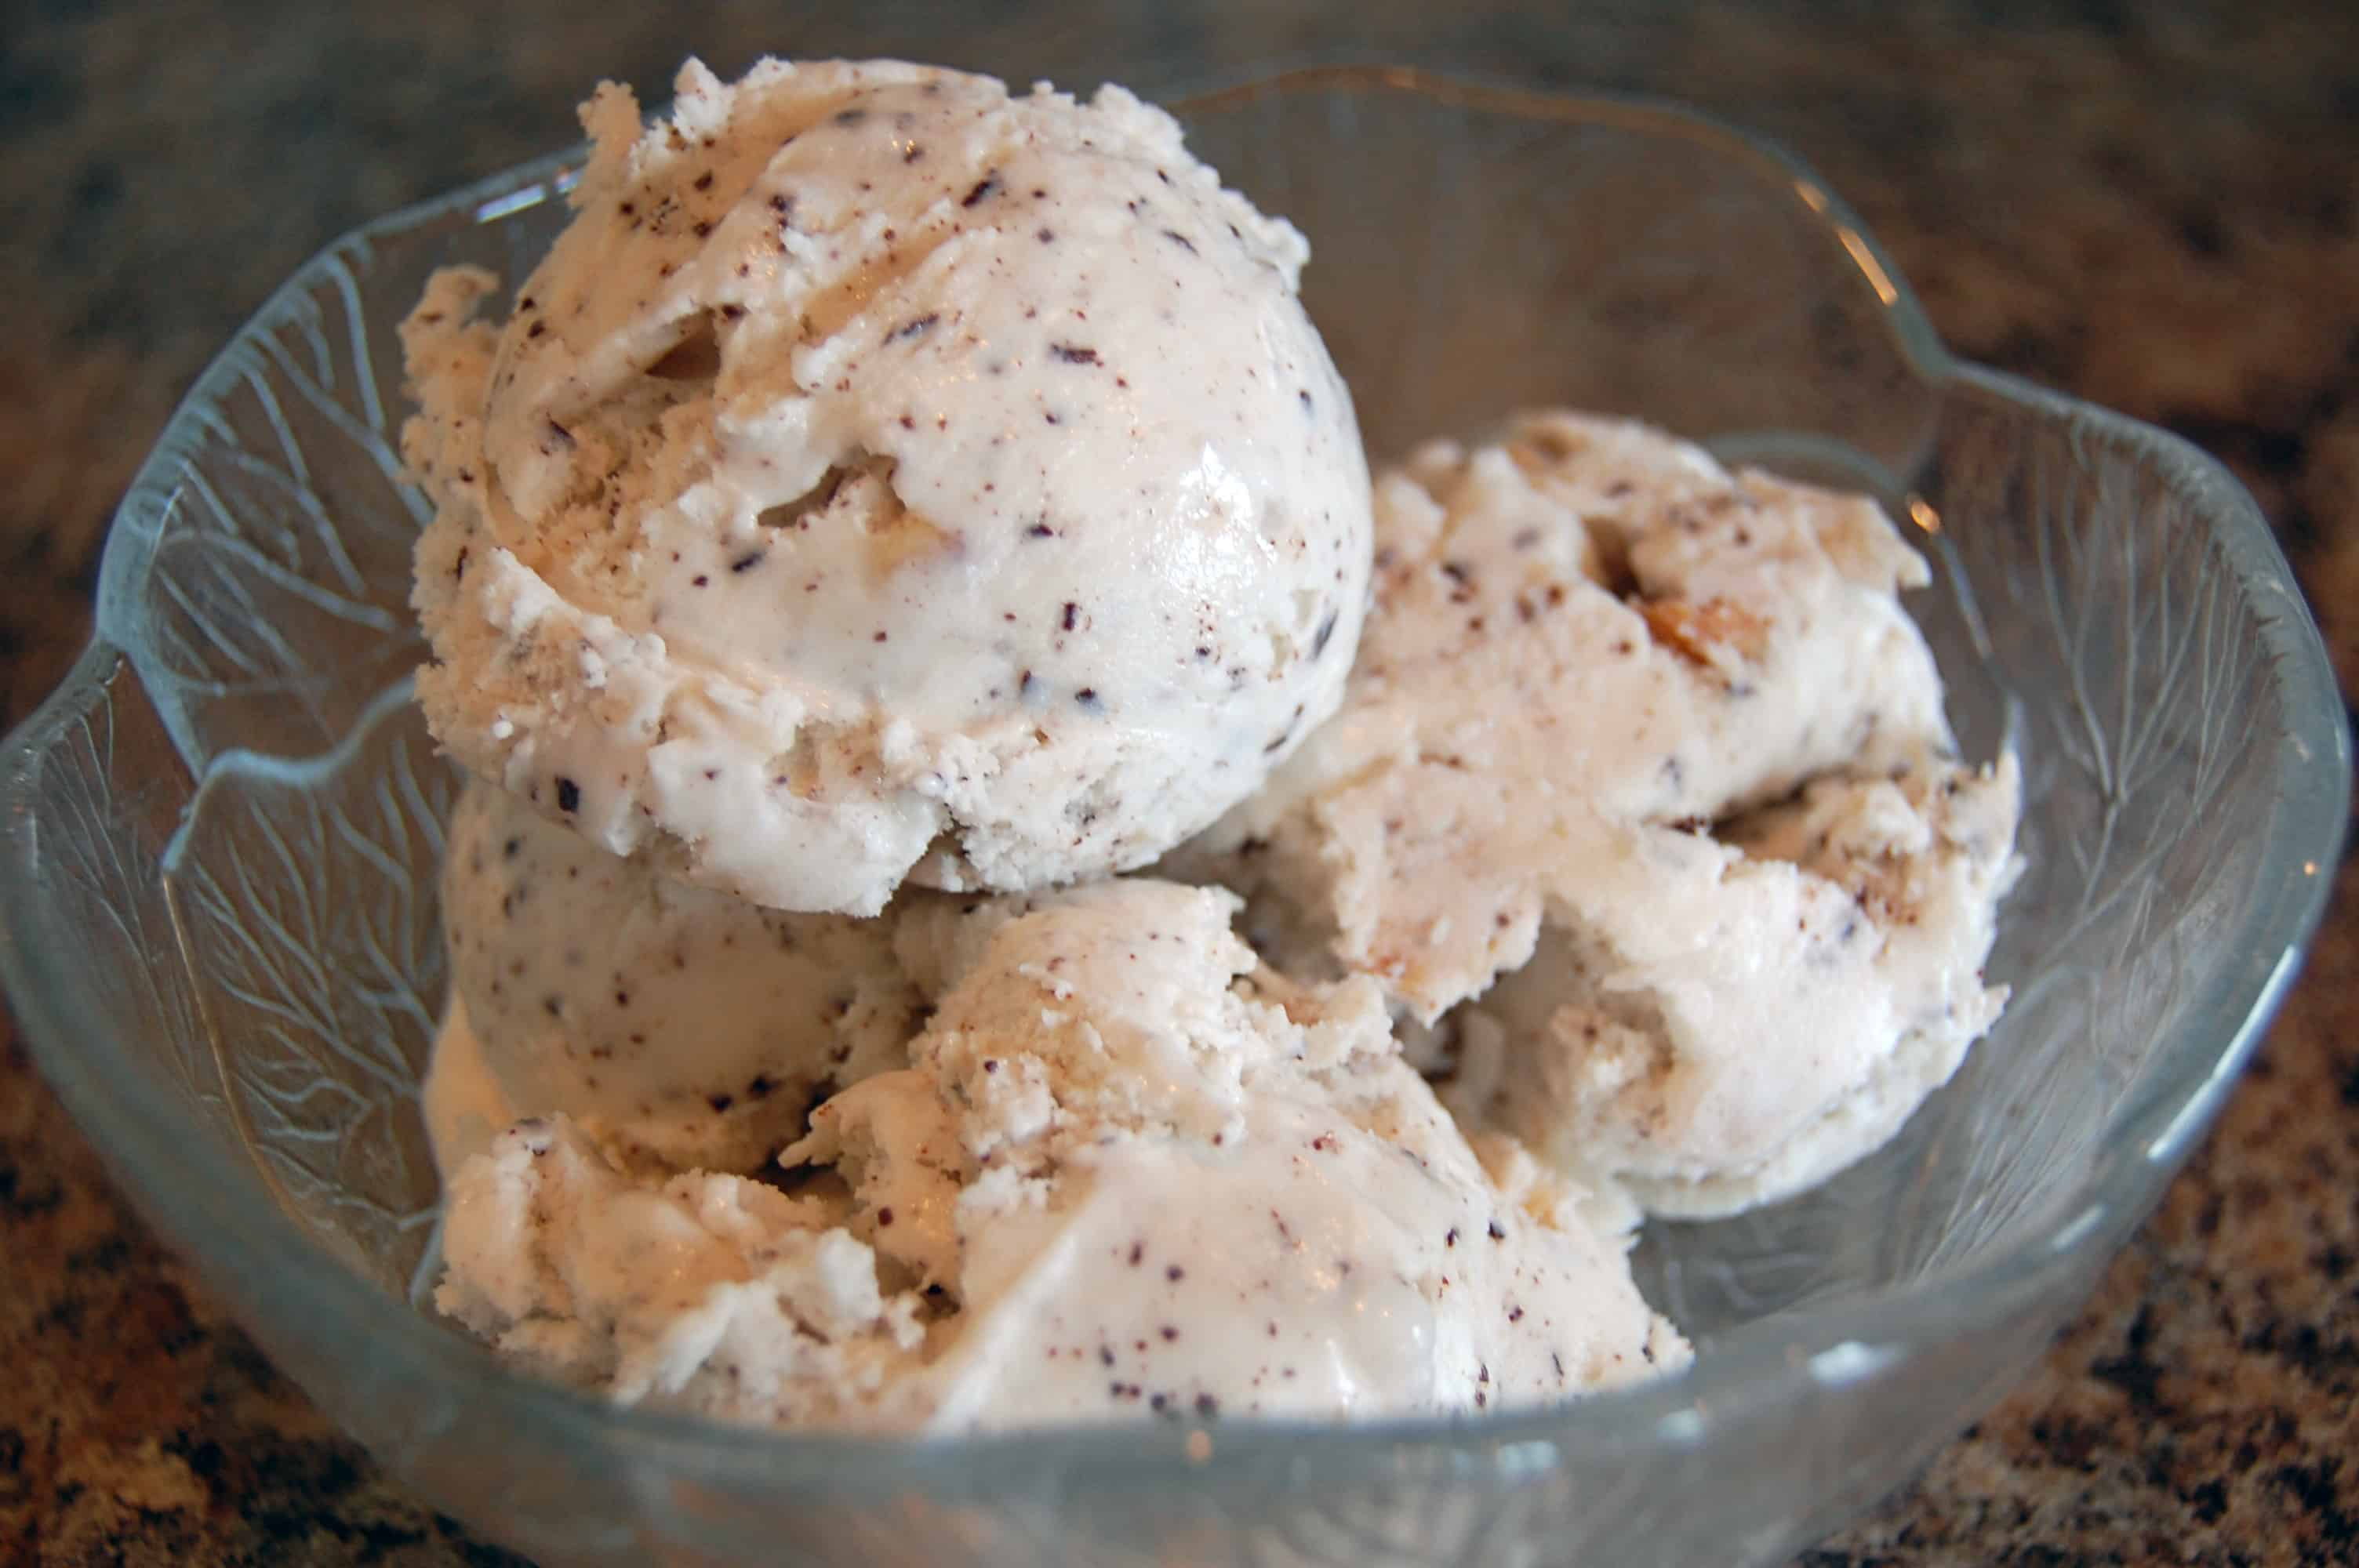 Coconut macadamia homemade ice cream